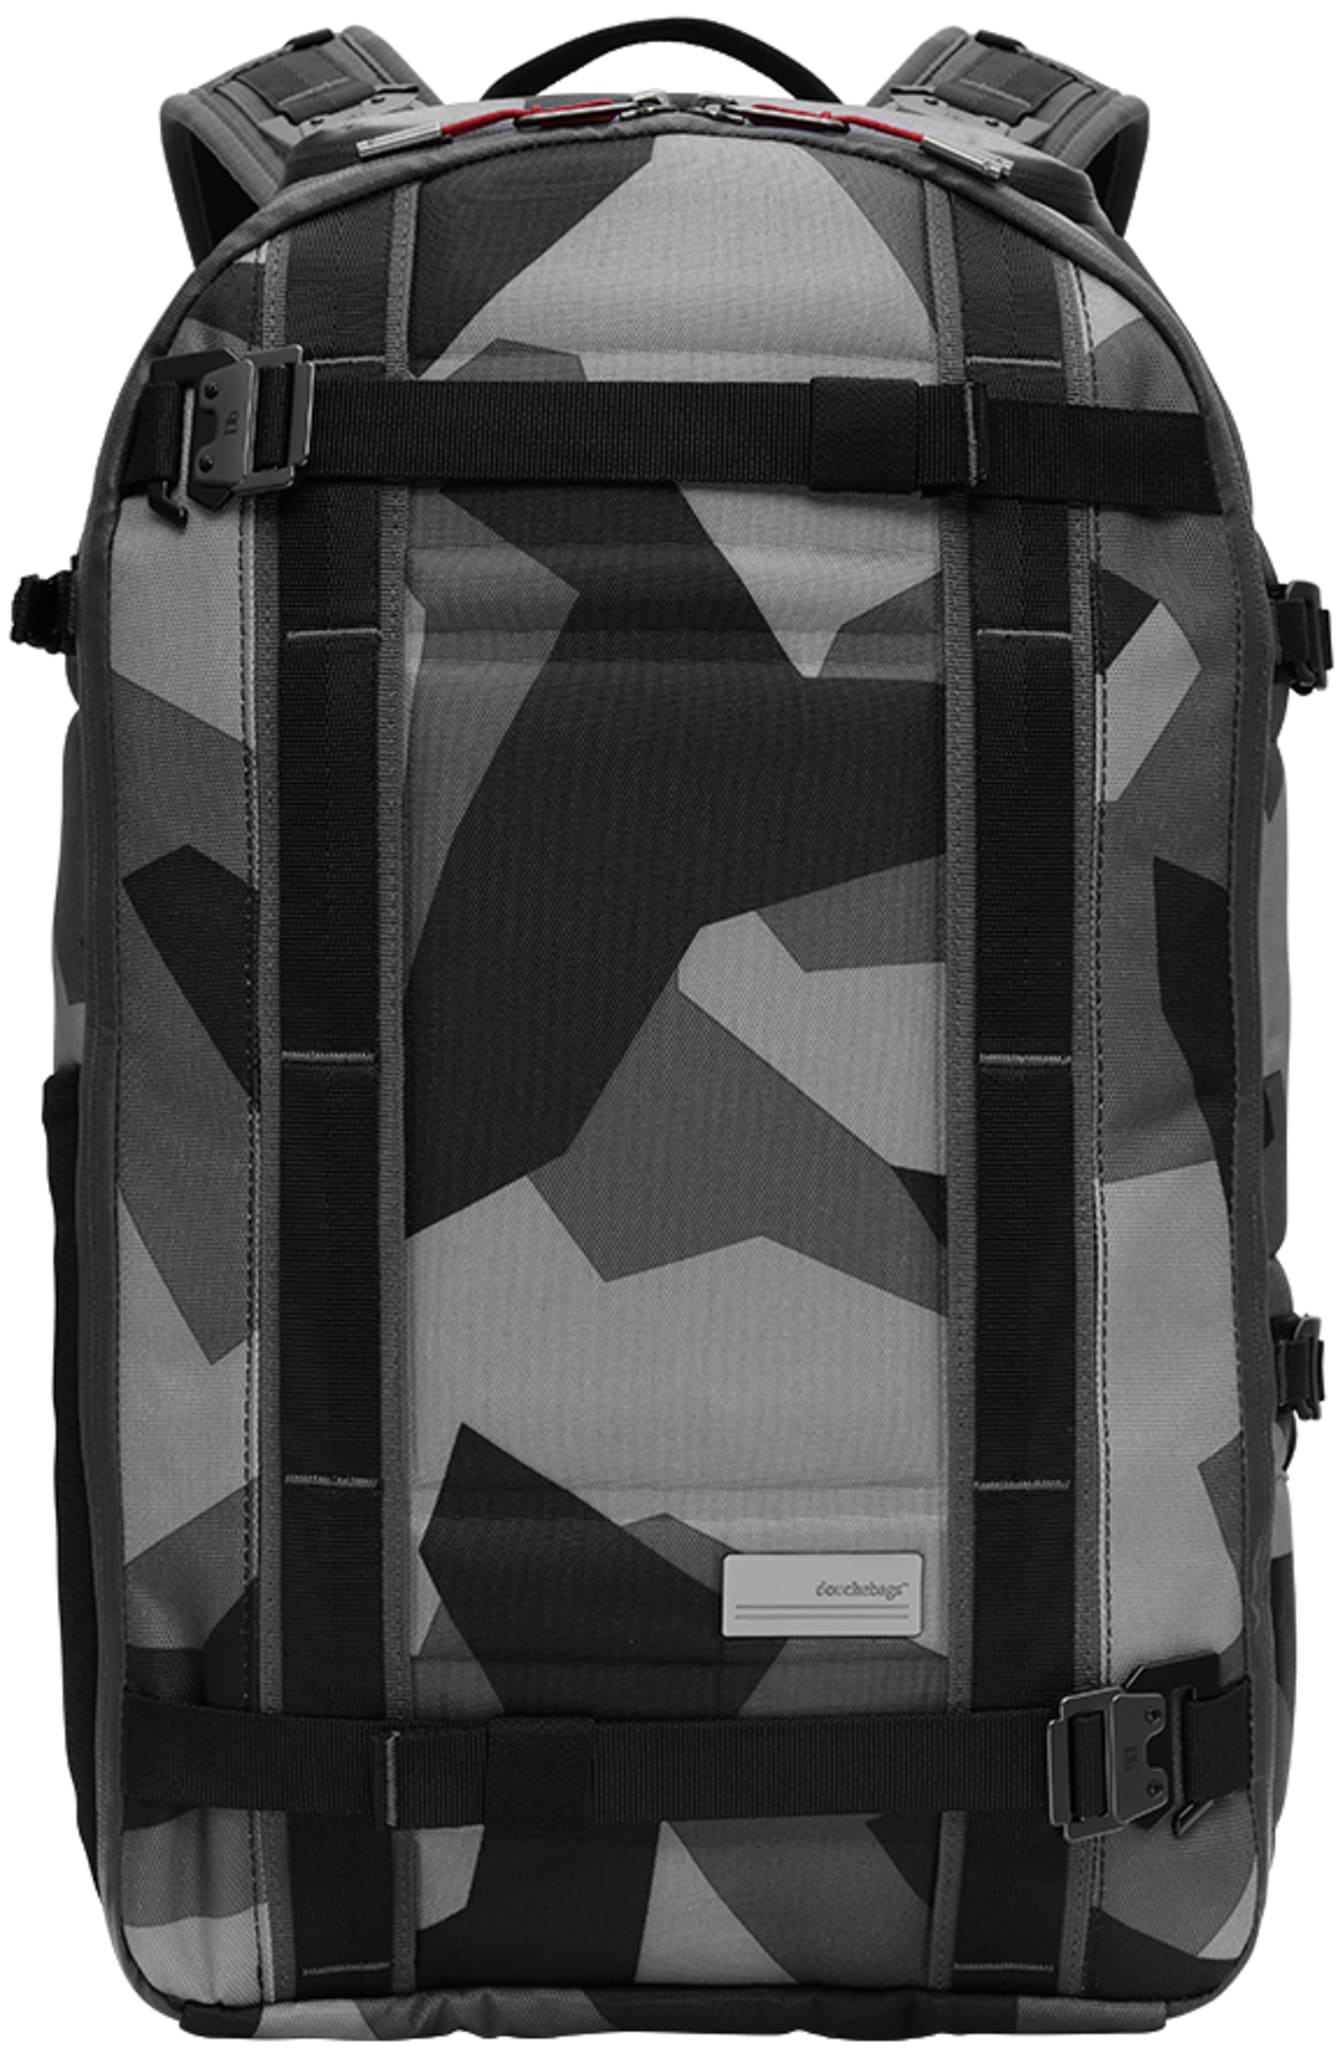 The Backpack Pro - Camo Limited Edition